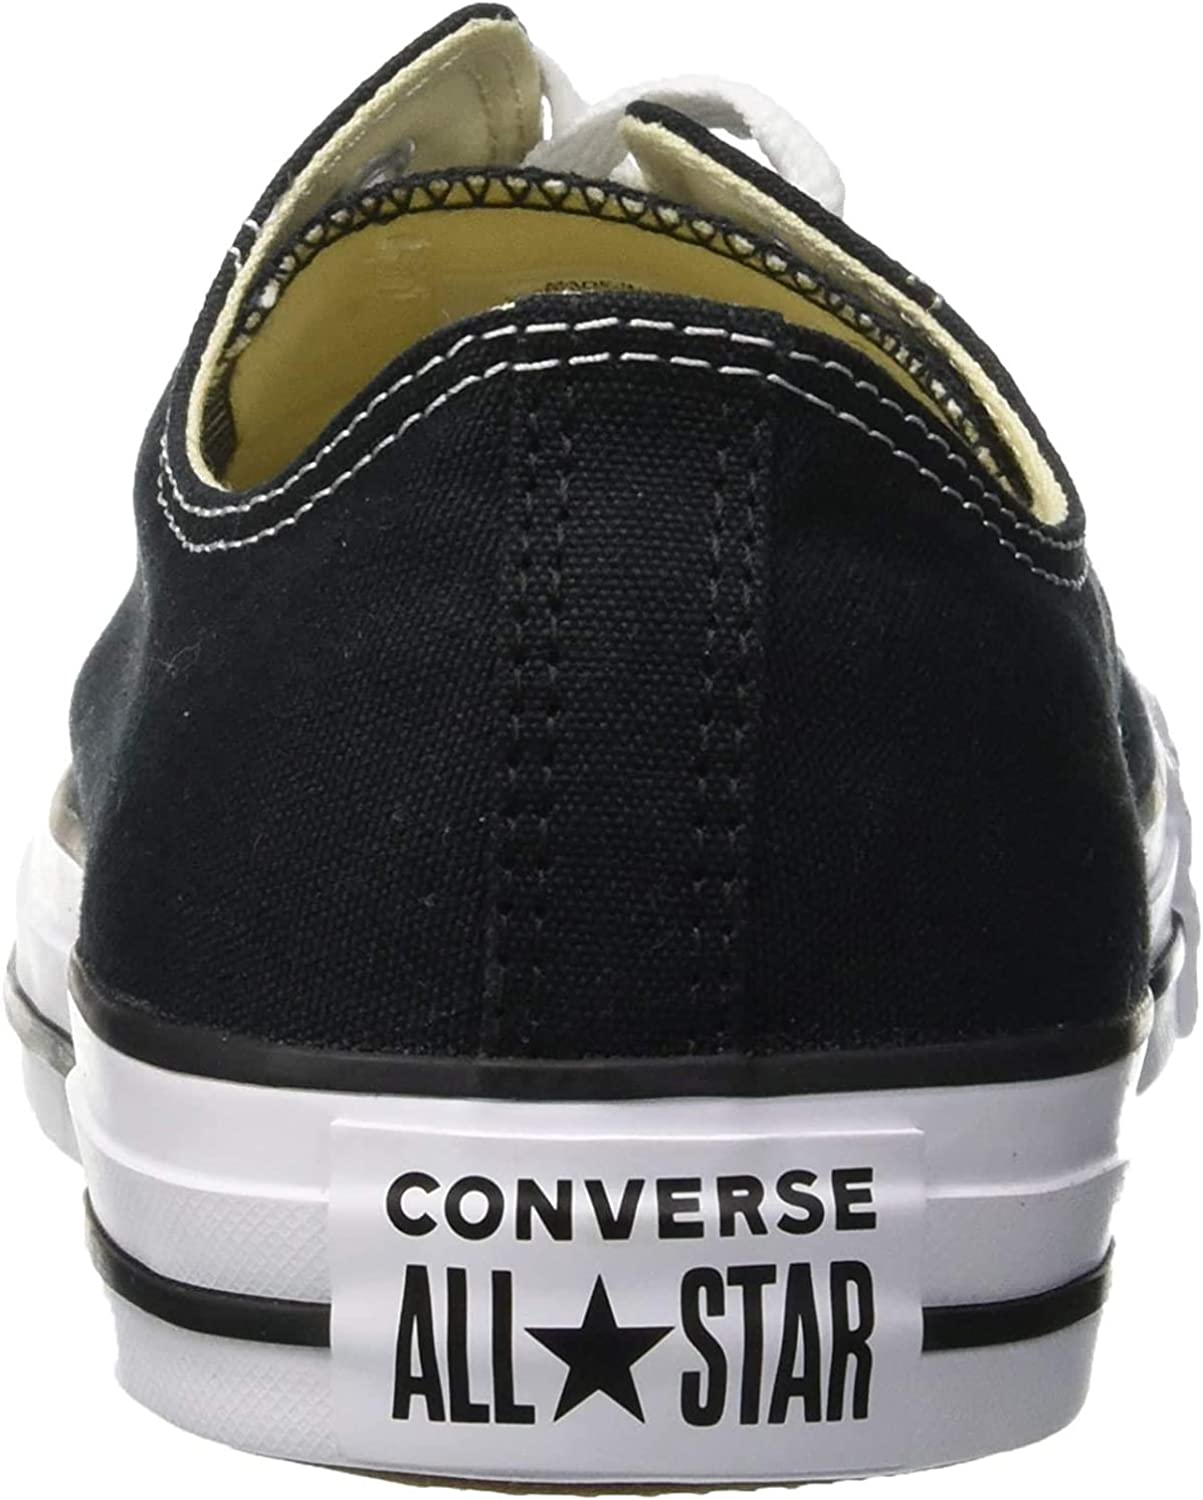 Converse Men's Max 65% OFF Finally popular brand Trainers